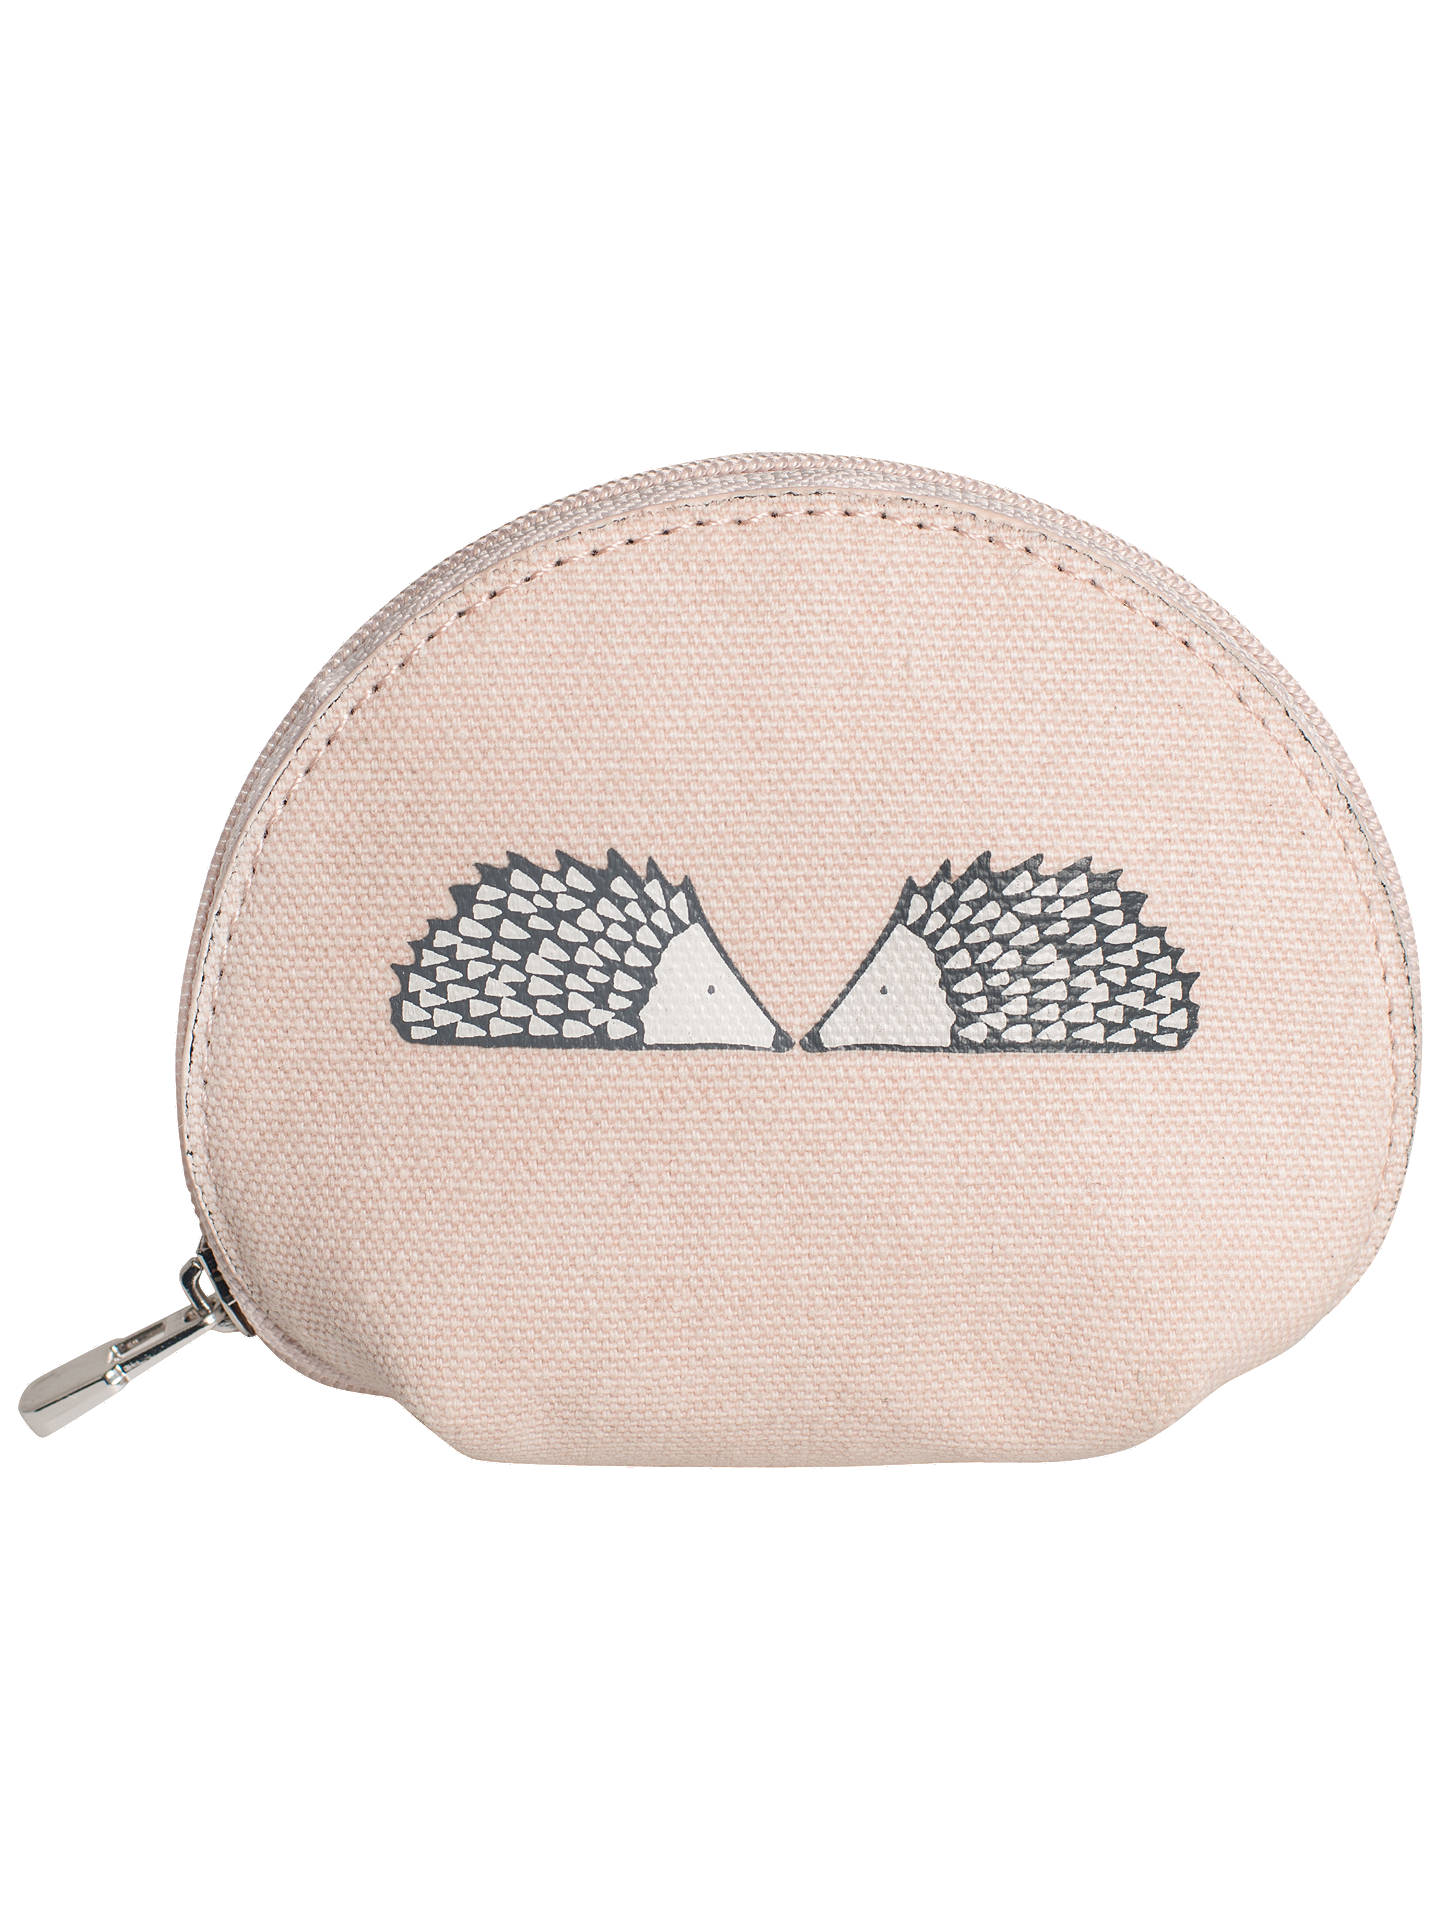 Buy Scion Spike Round Coin Purse Online at johnlewis.com